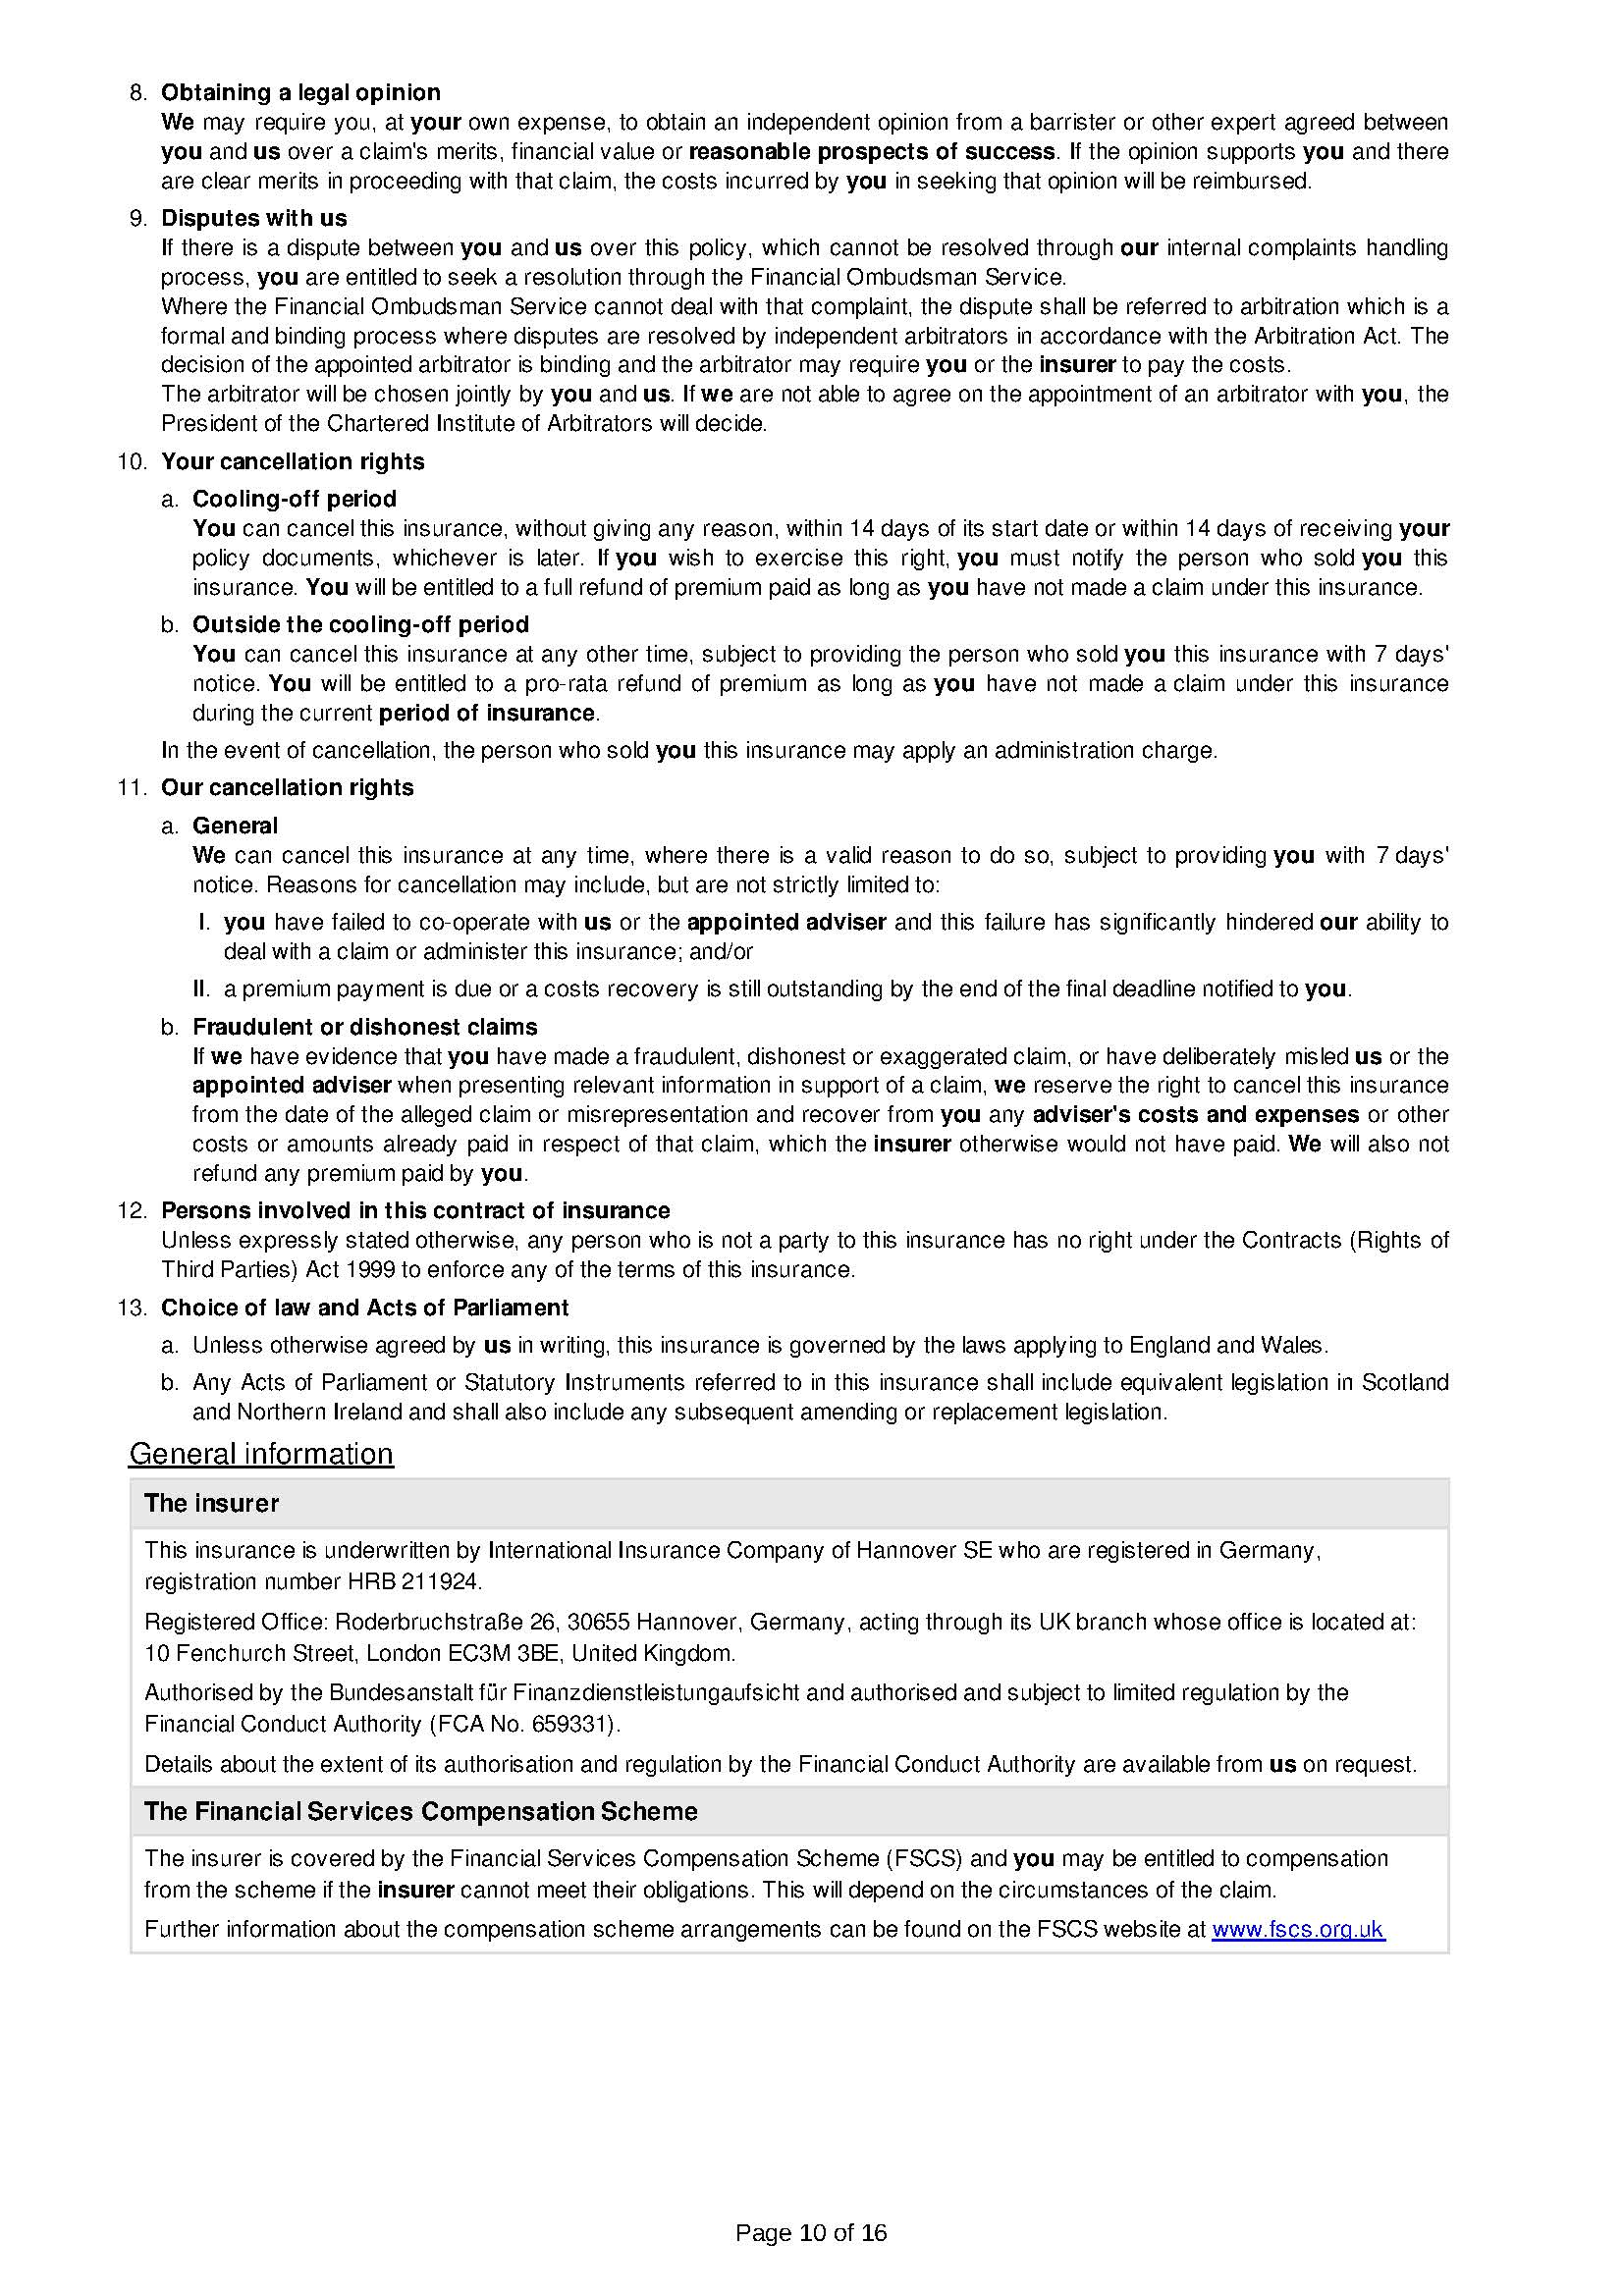 insurance_policy_02_page_10